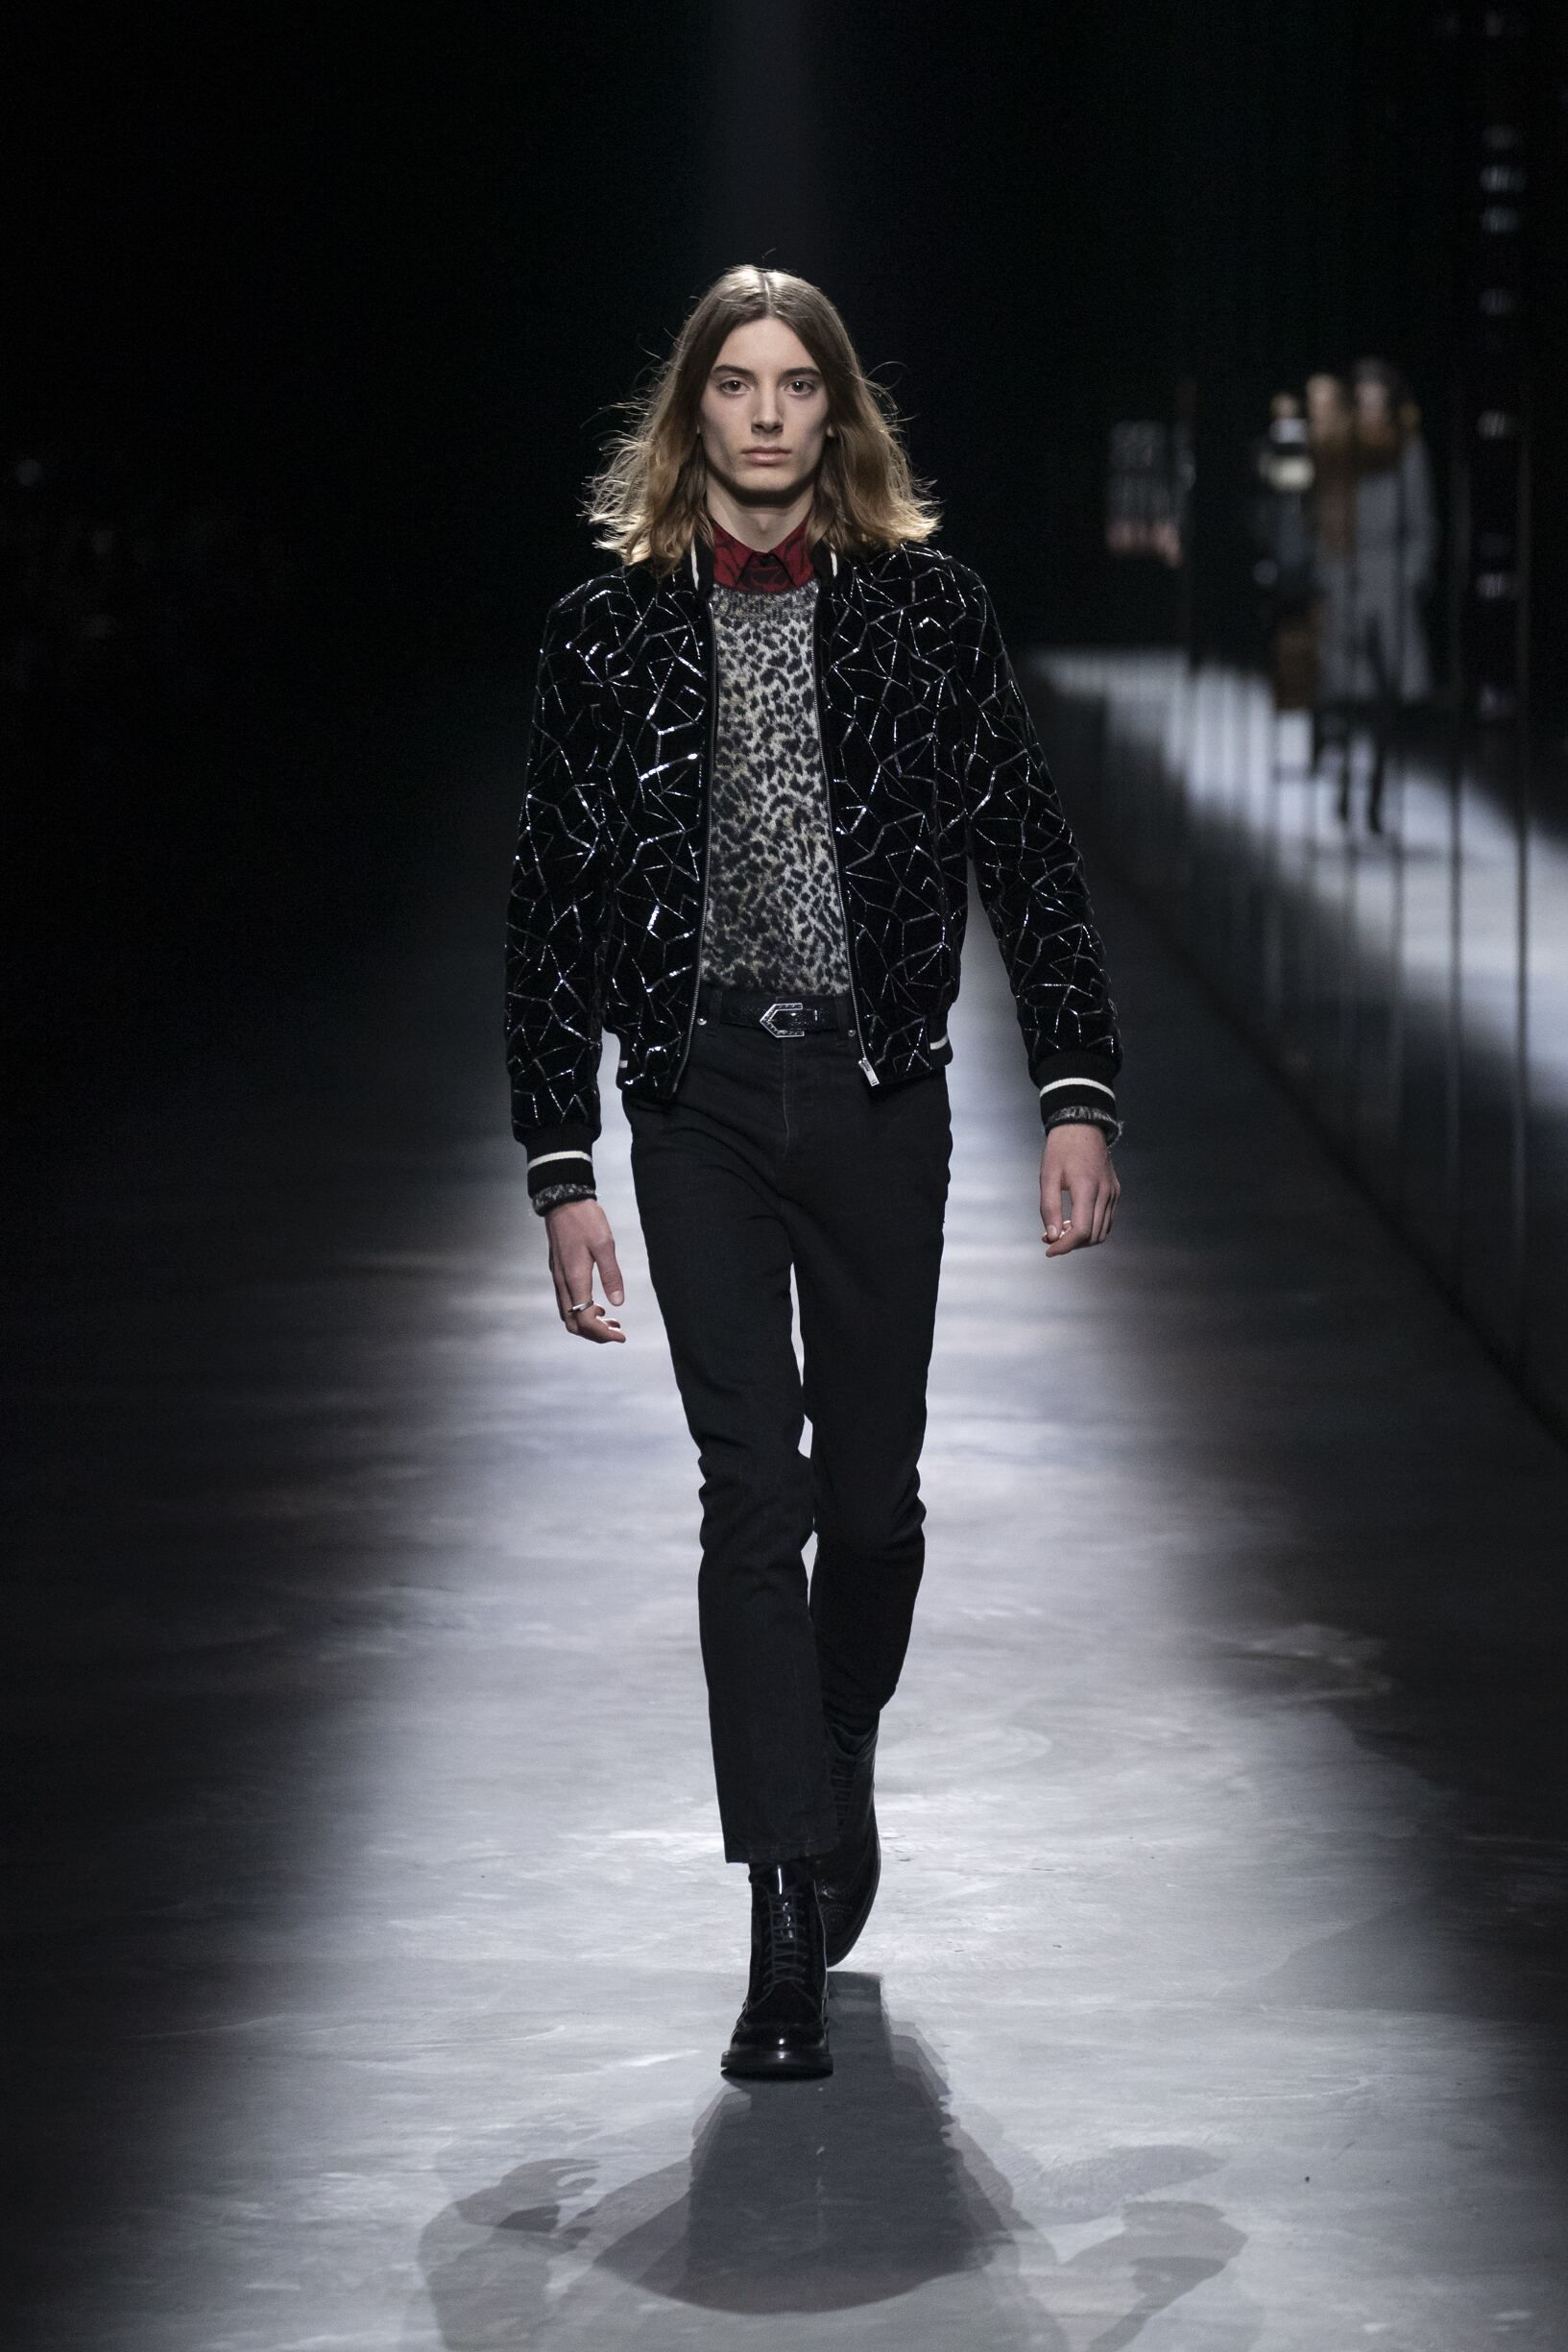 Saint Laurent Fall Winter 2019 Collection The Skinny Beep